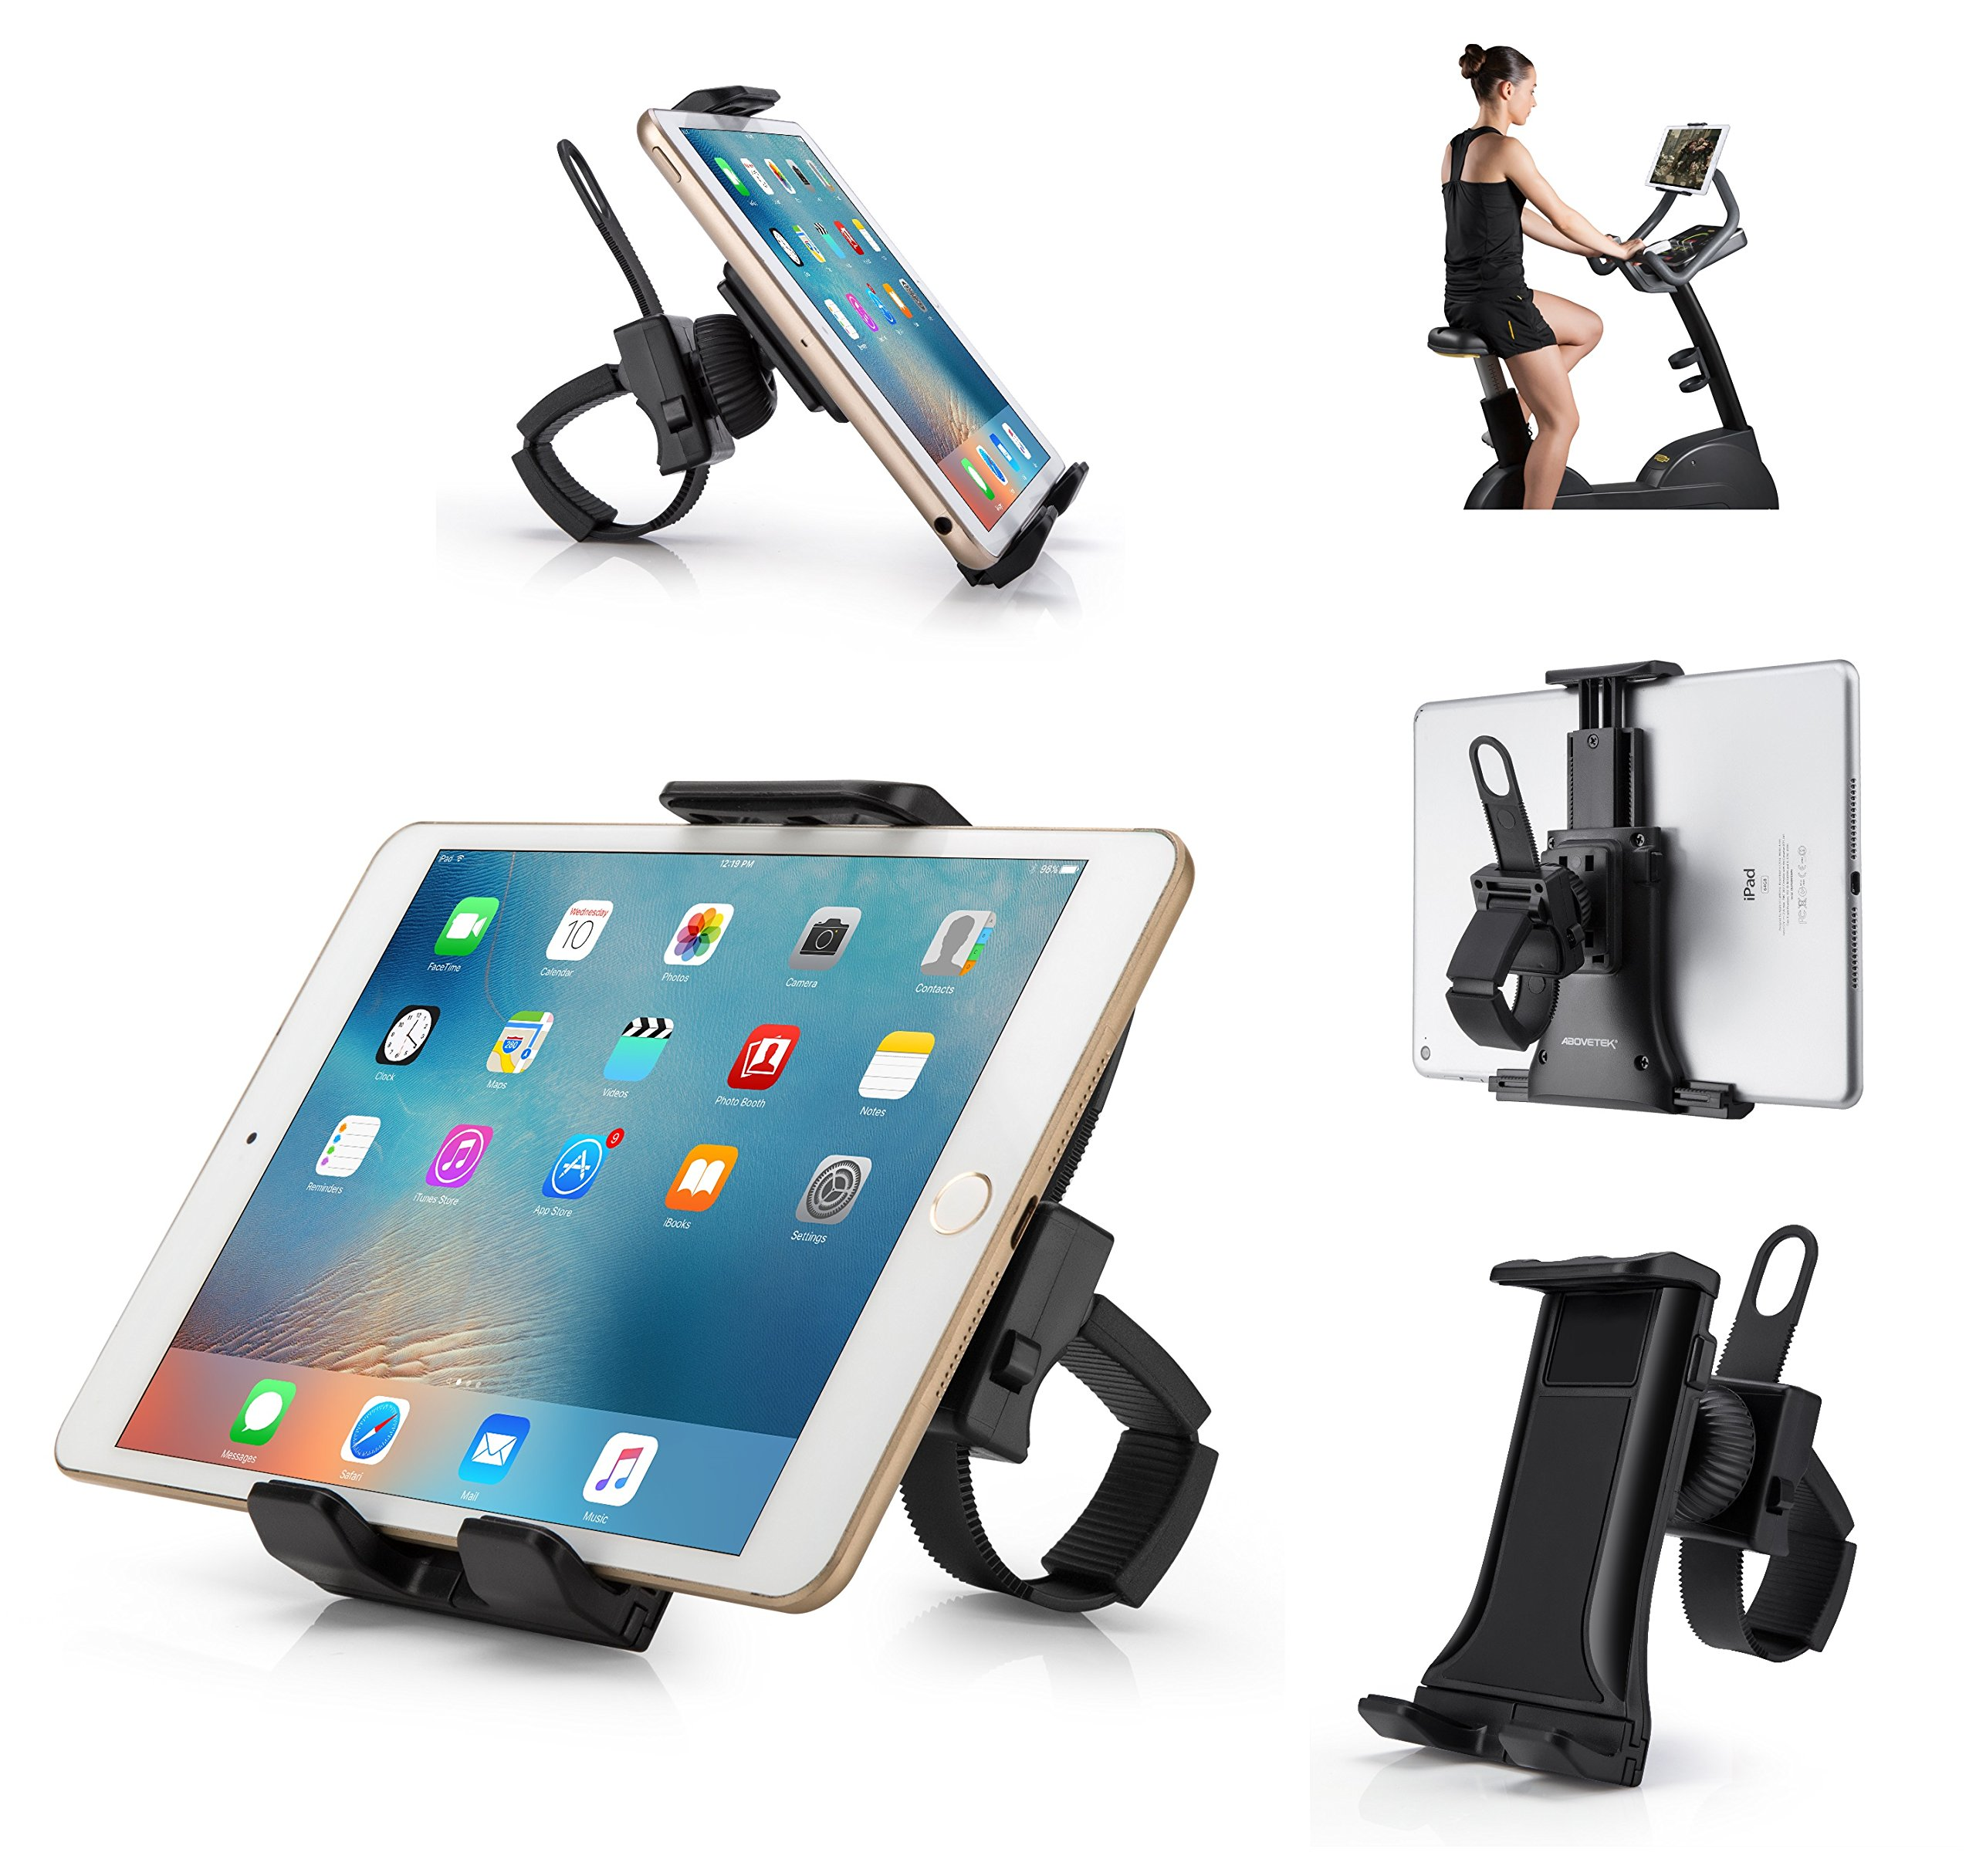 AboveTEK All-in-One Indoor Cycling Bike iPad/iPhone Mount, Portable Compact Tablet Holder for Gym Handlebar on Exercise Bikes & Treadmills, 360° Swivel Stand for 3.5-12'' Tablets/Cell Phones by AboveTEK